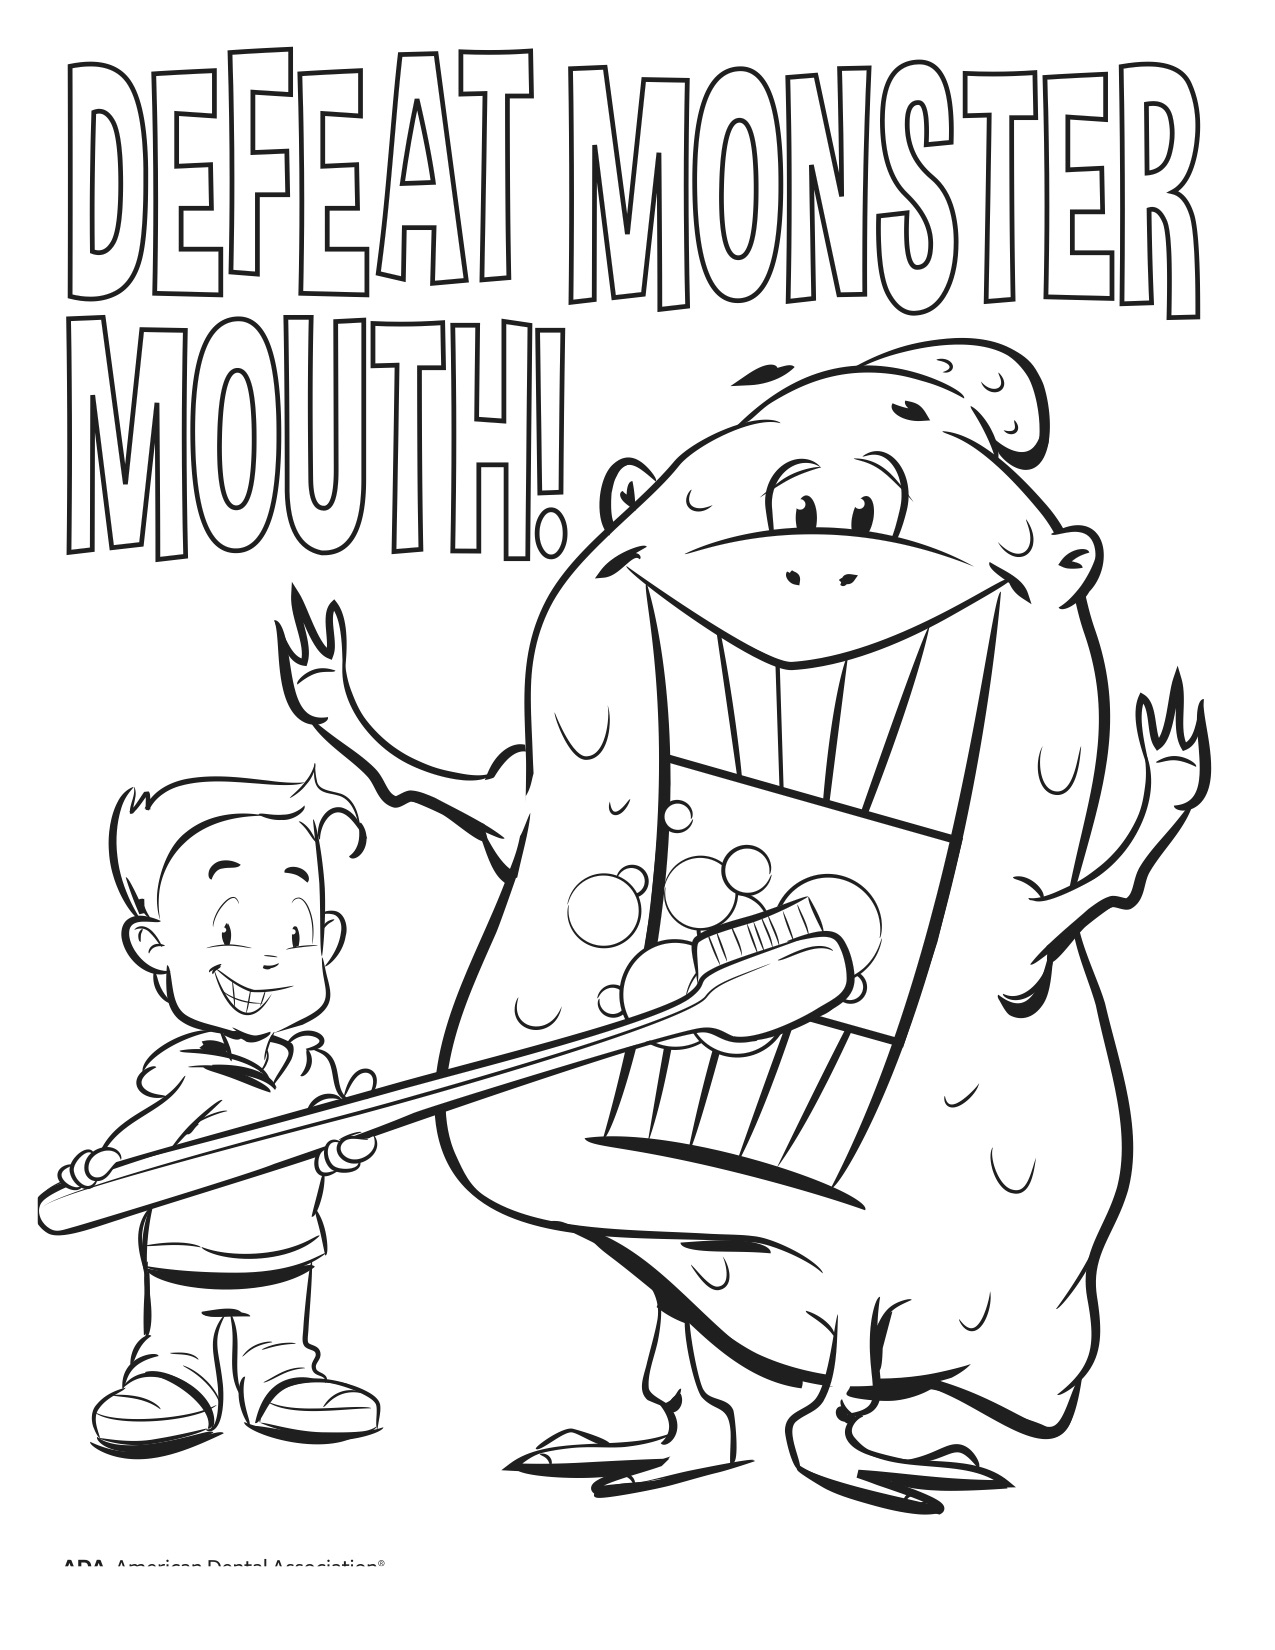 coloring pages health - photo#20